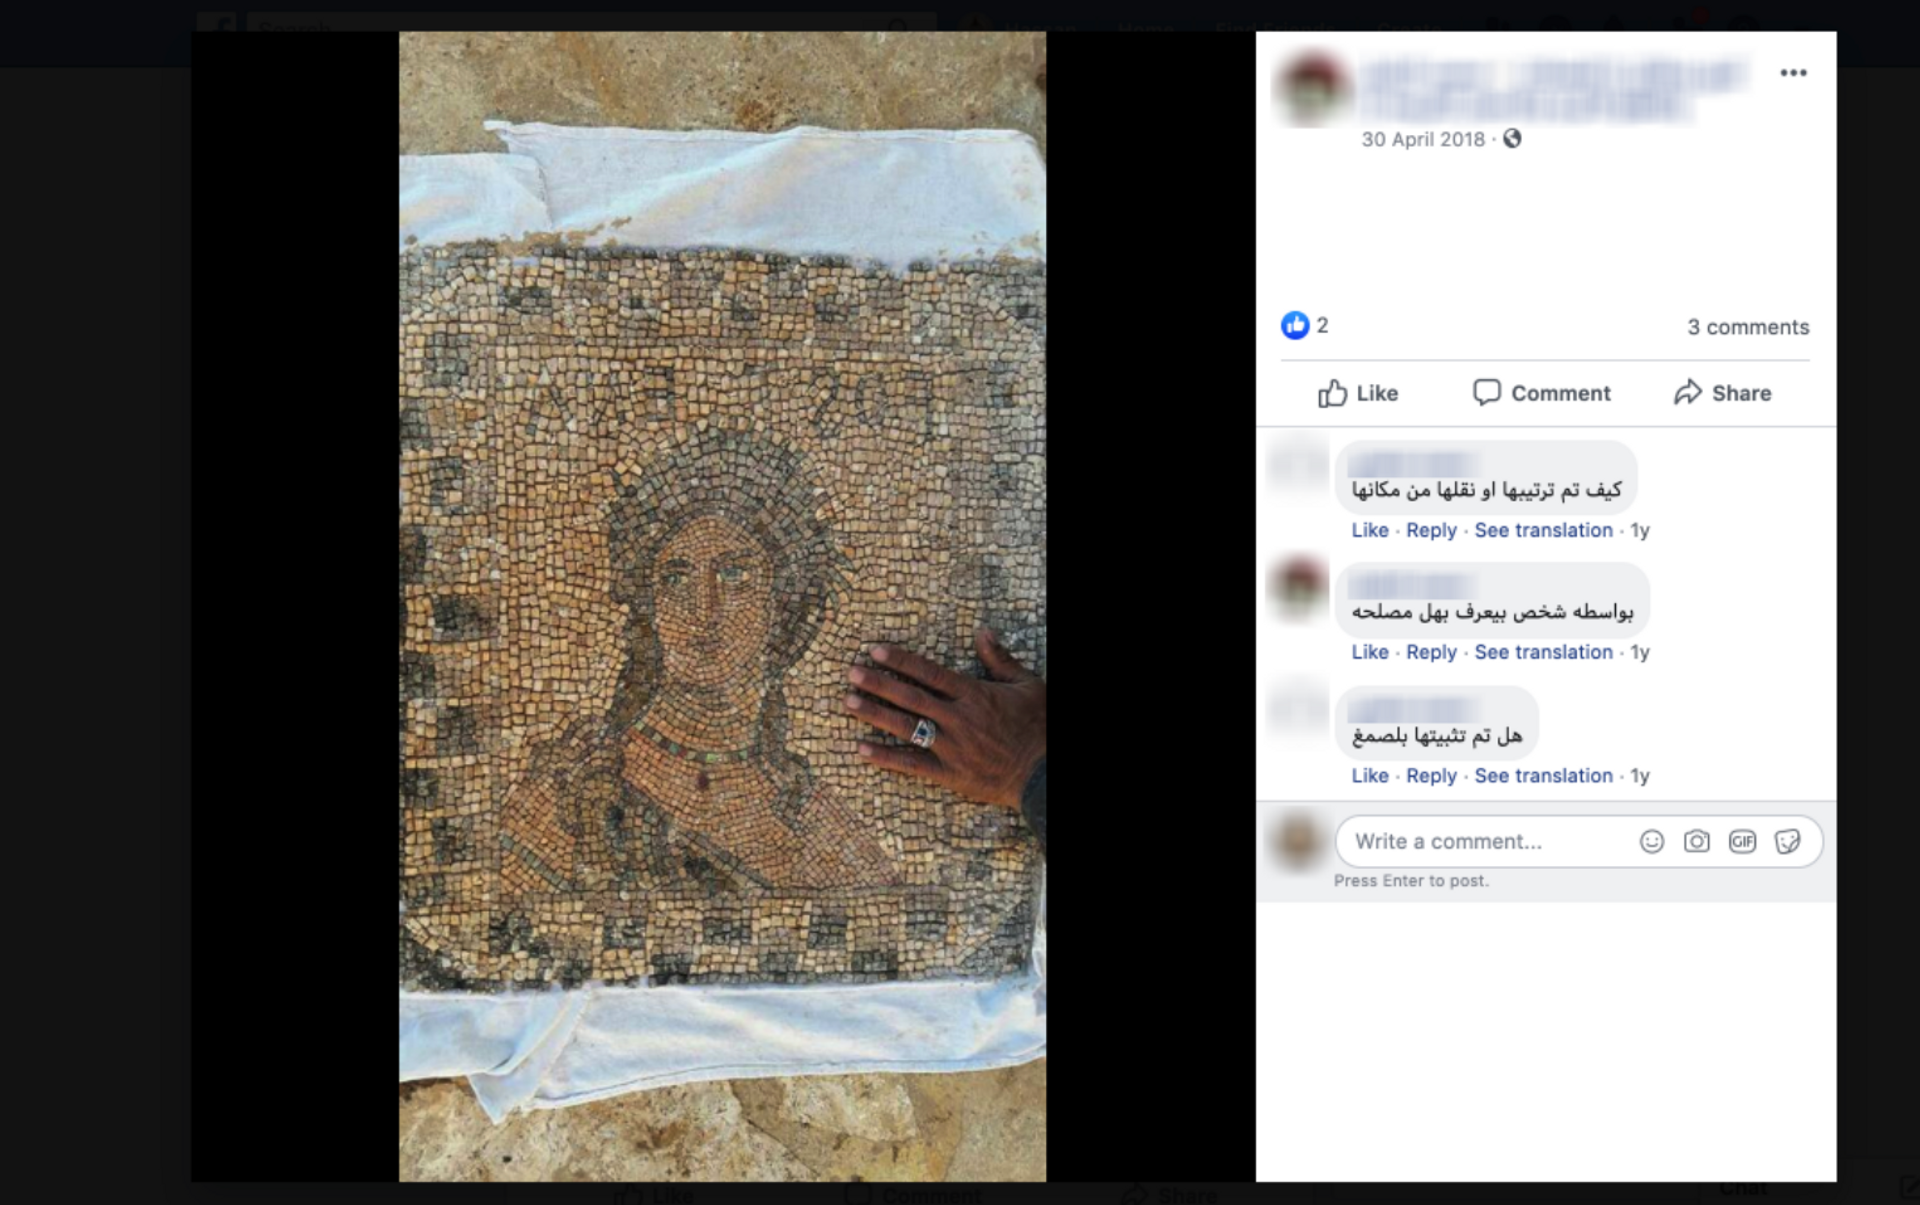 This screenshot of a Facebook post from 30 April 2018 shows a mosaic offered for sale